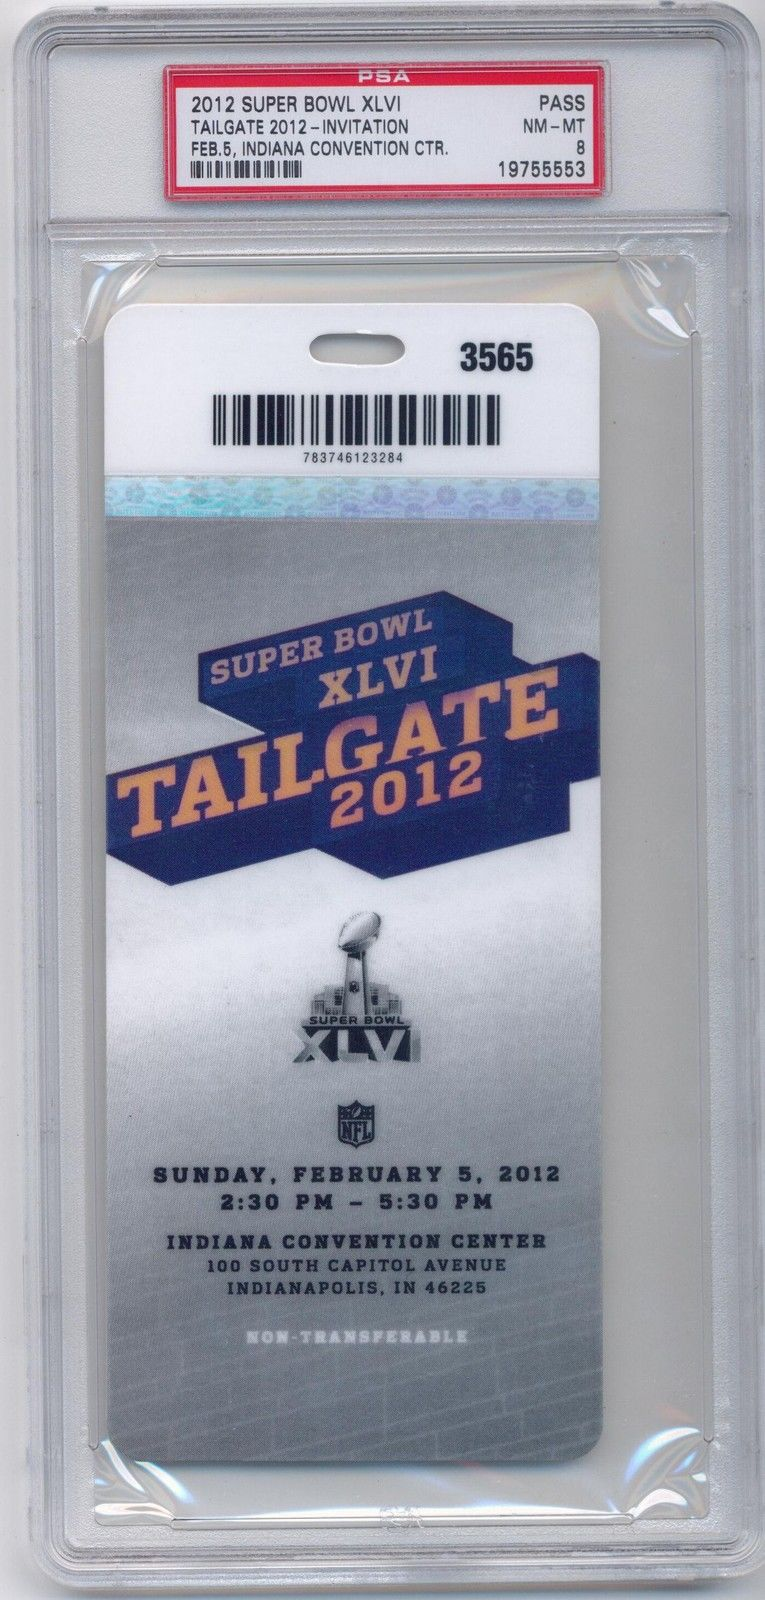 Super Bowl XLVI       Pass